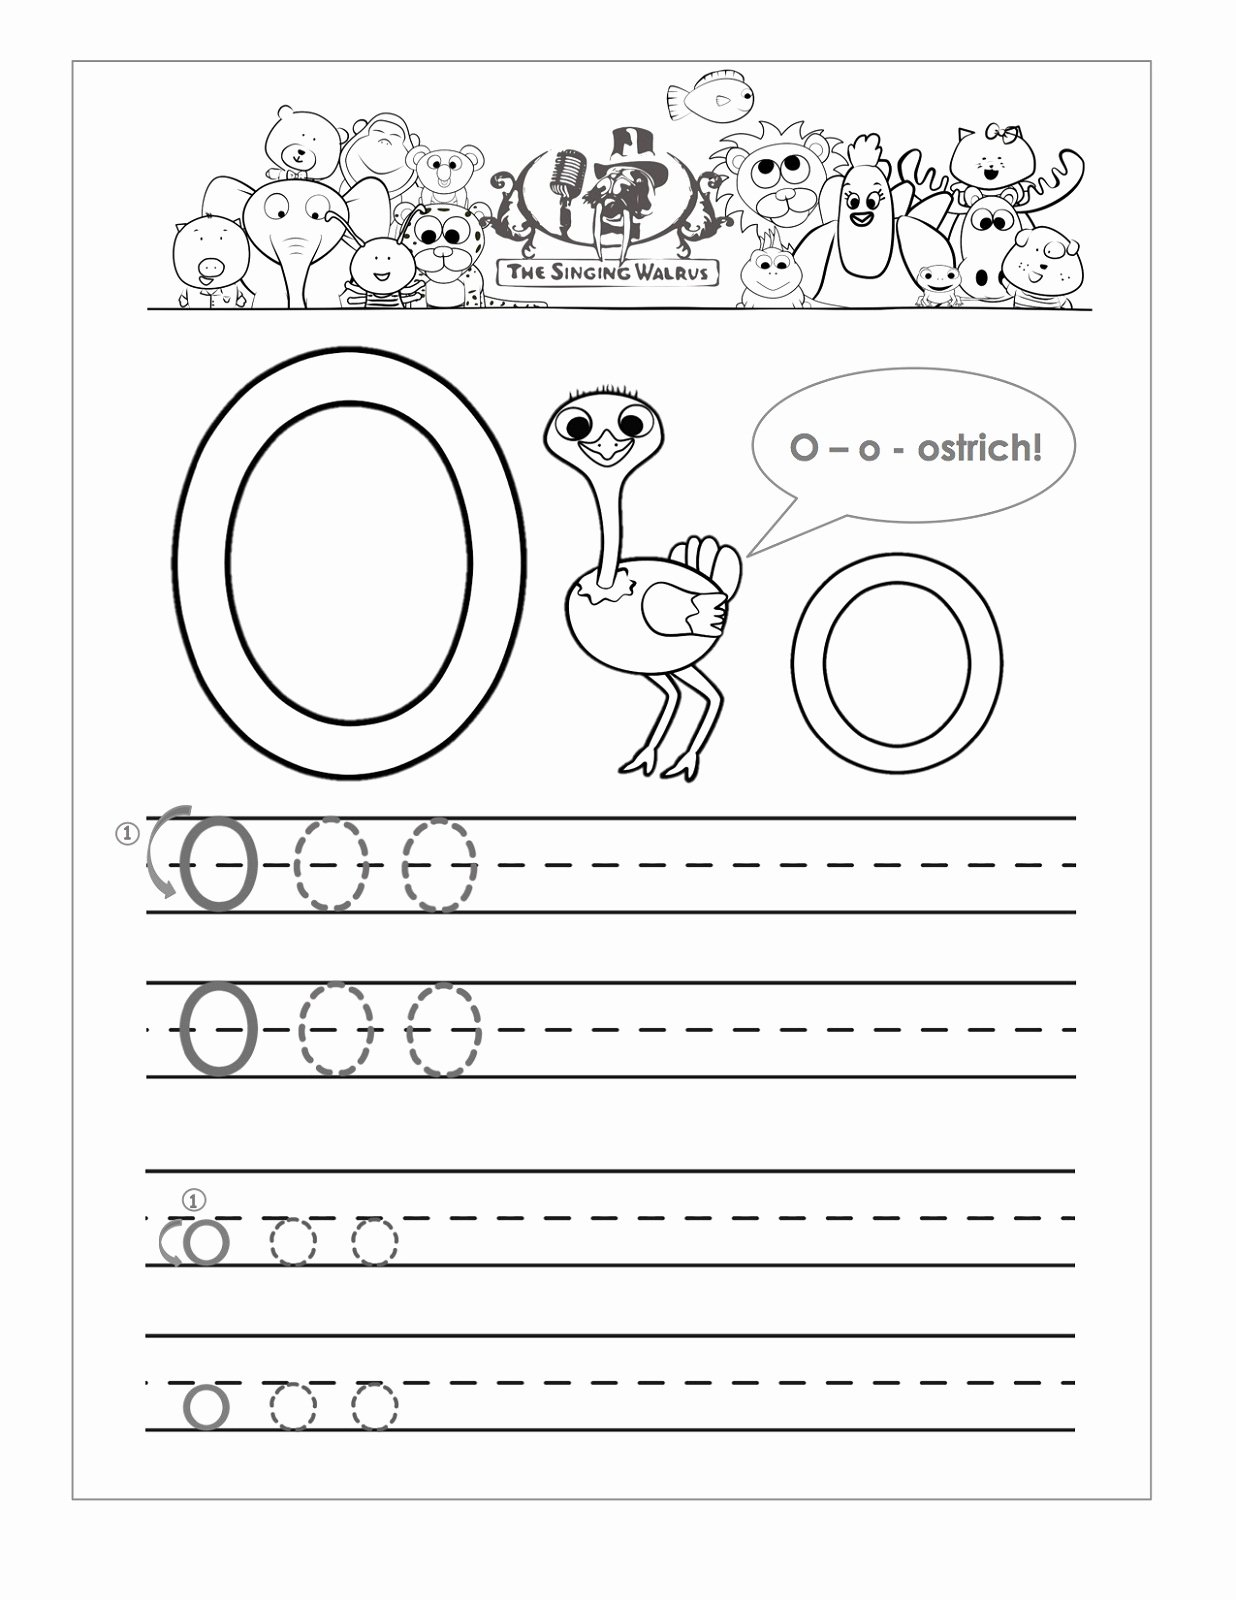 Letter O Worksheet for Kindergarten Ideas Letter O Worksheets for Preschool